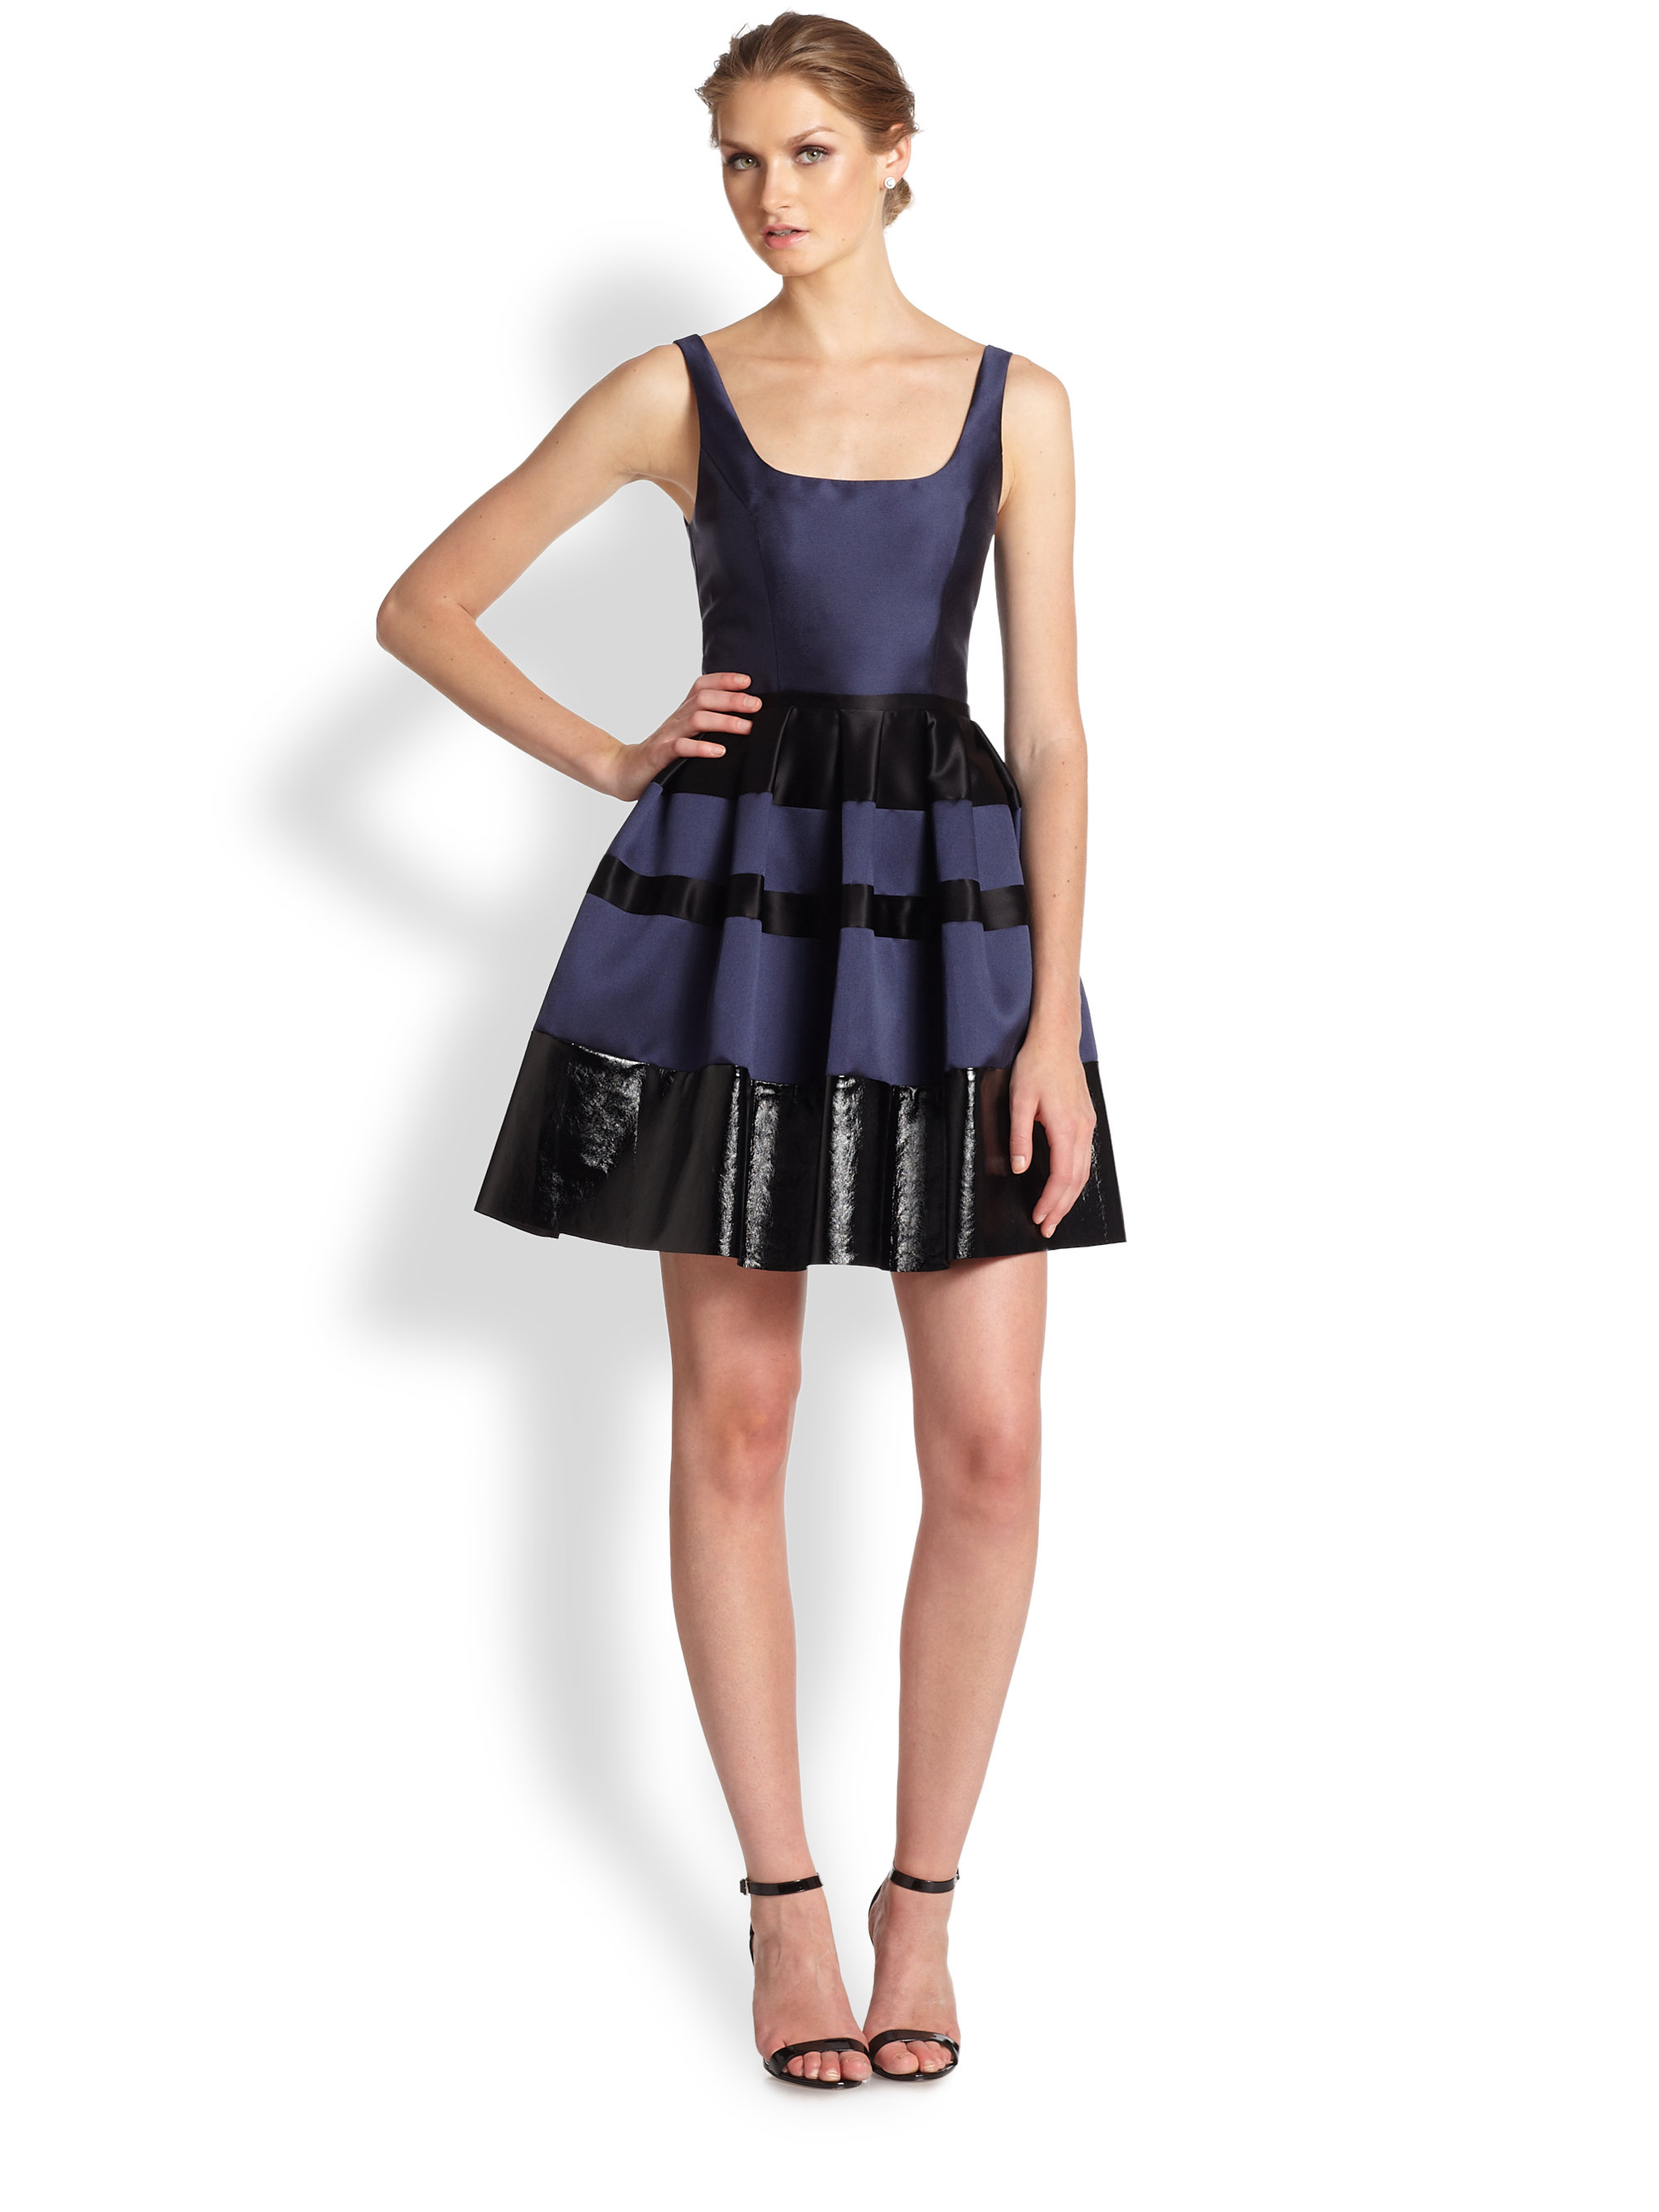 designer allen schwartz women clothing dresses